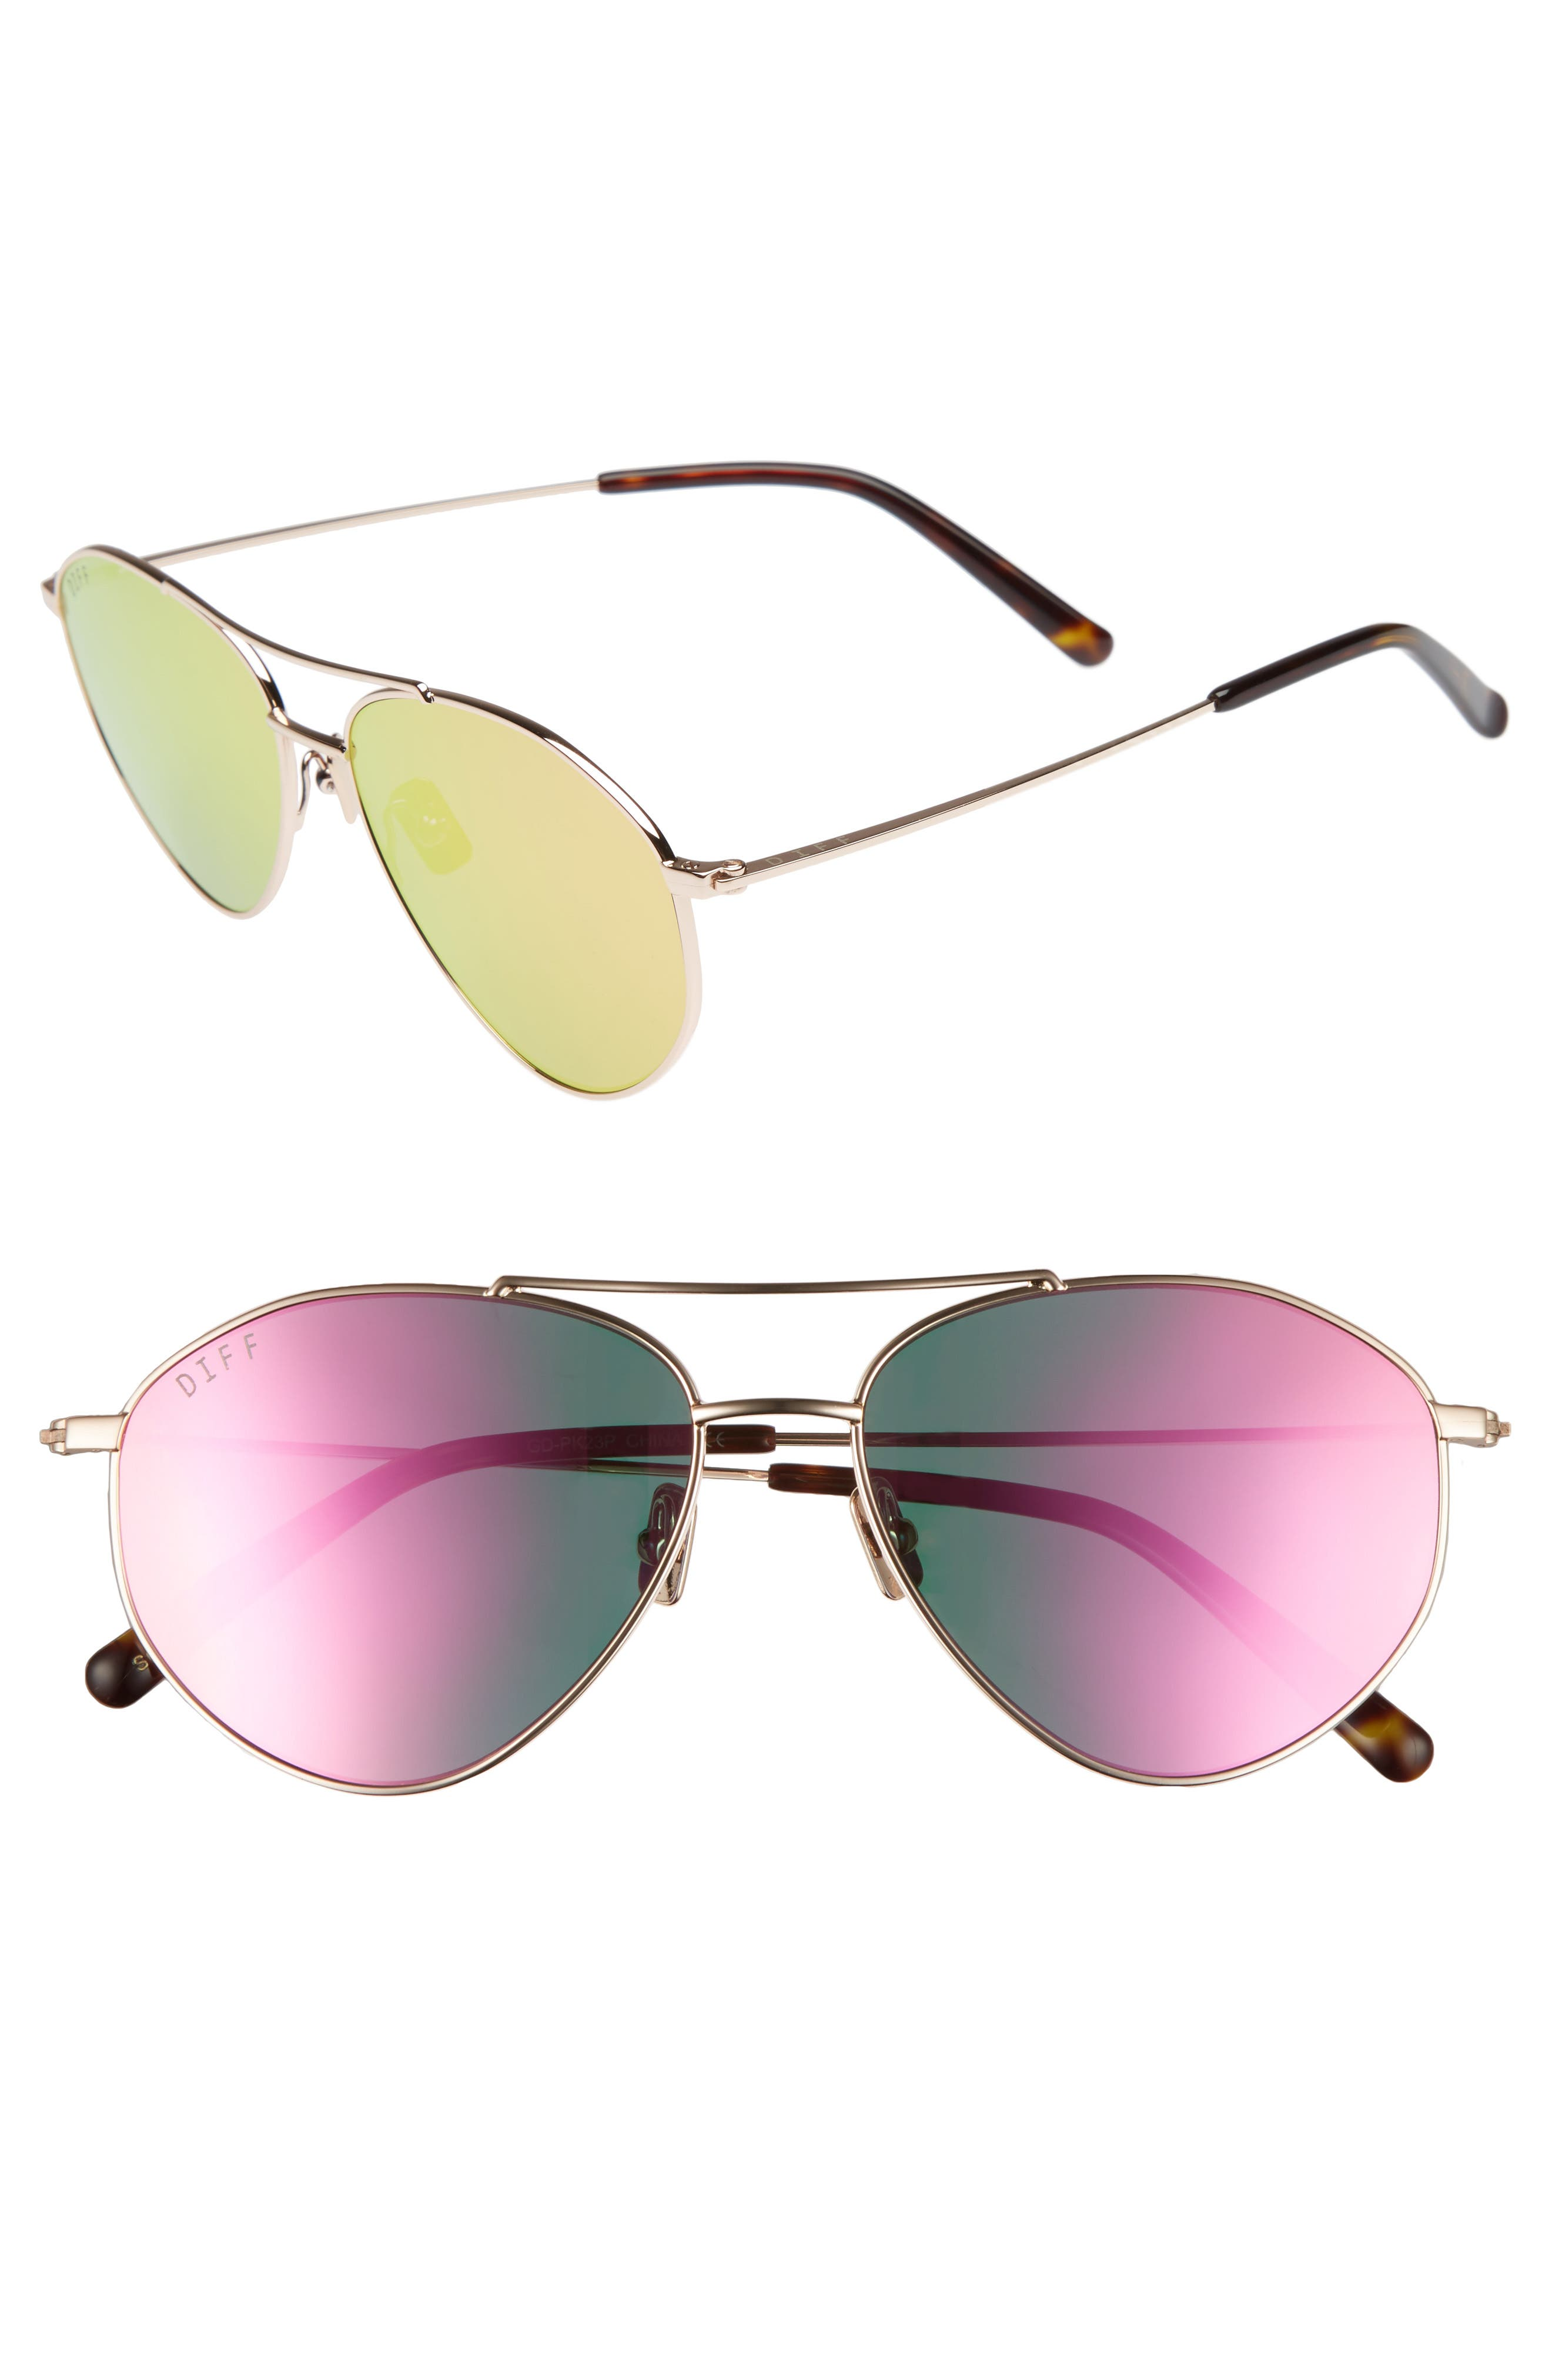 Scout 53mm Aviator Sunglasses,                             Main thumbnail 1, color,                             Gold/ Pink